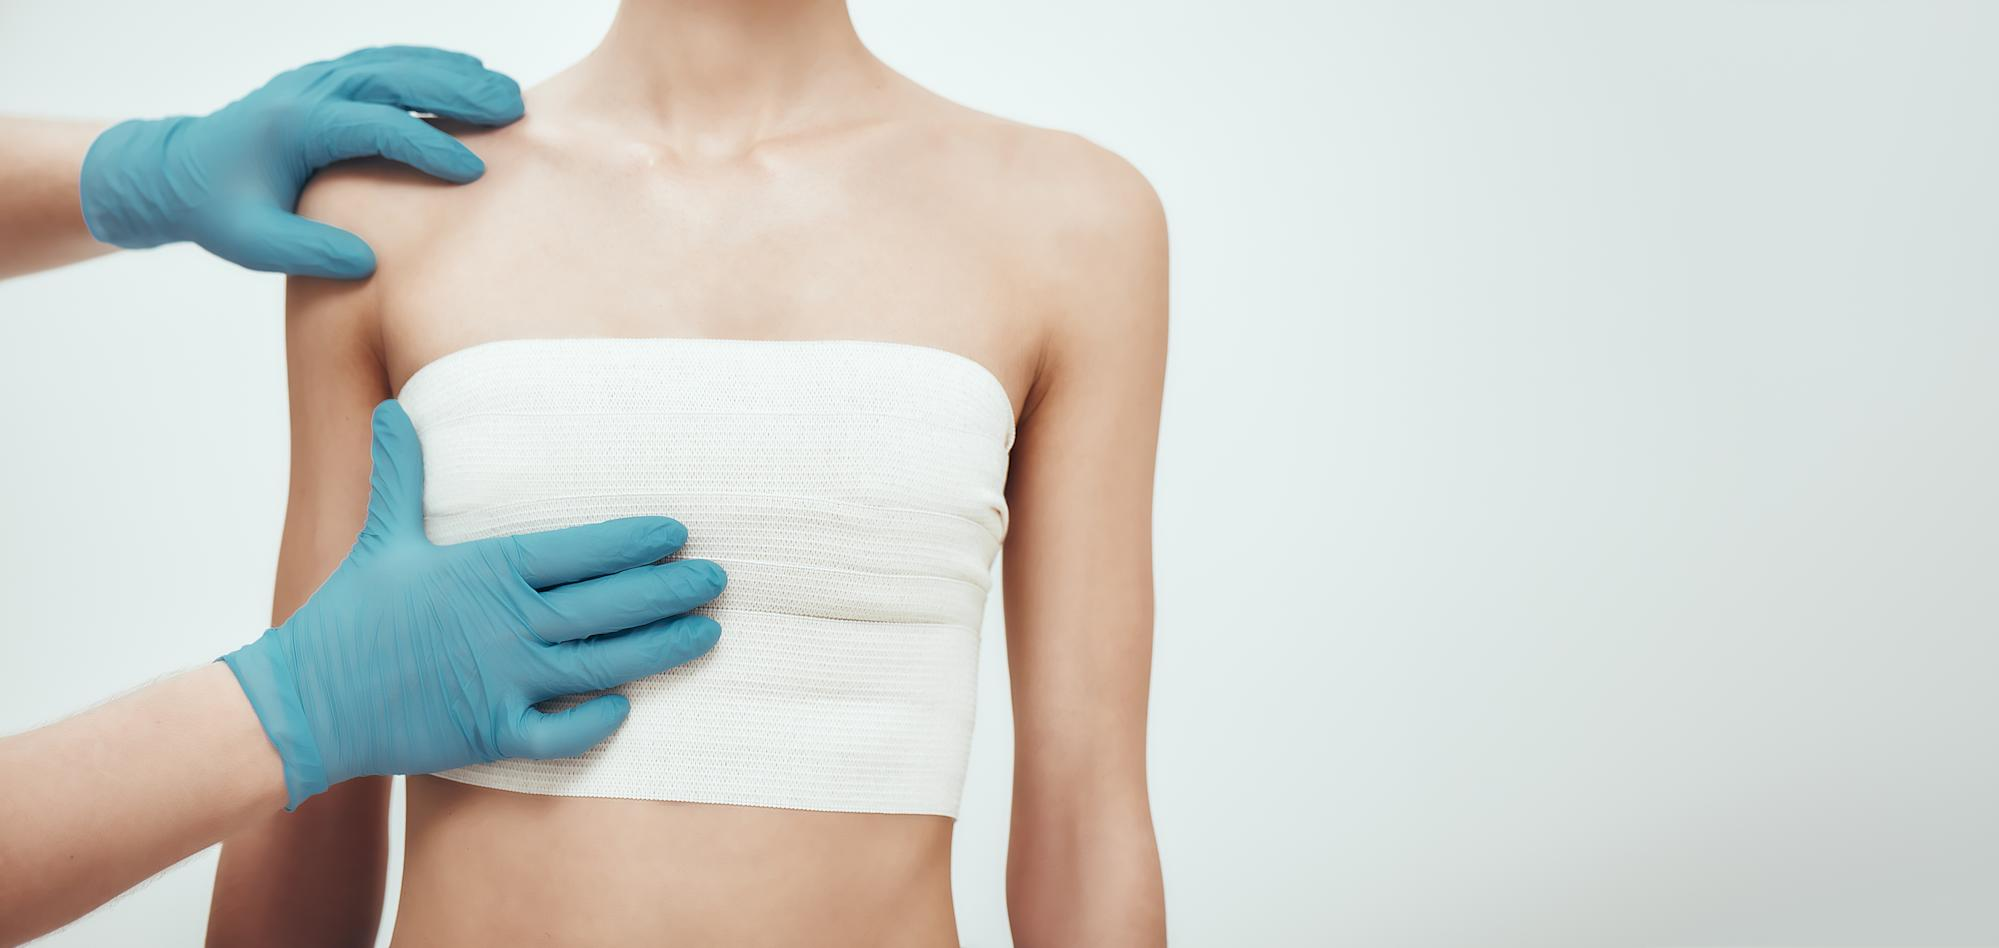 'Rough' breast implants trigger inflammation that can cause cancer, study suggests